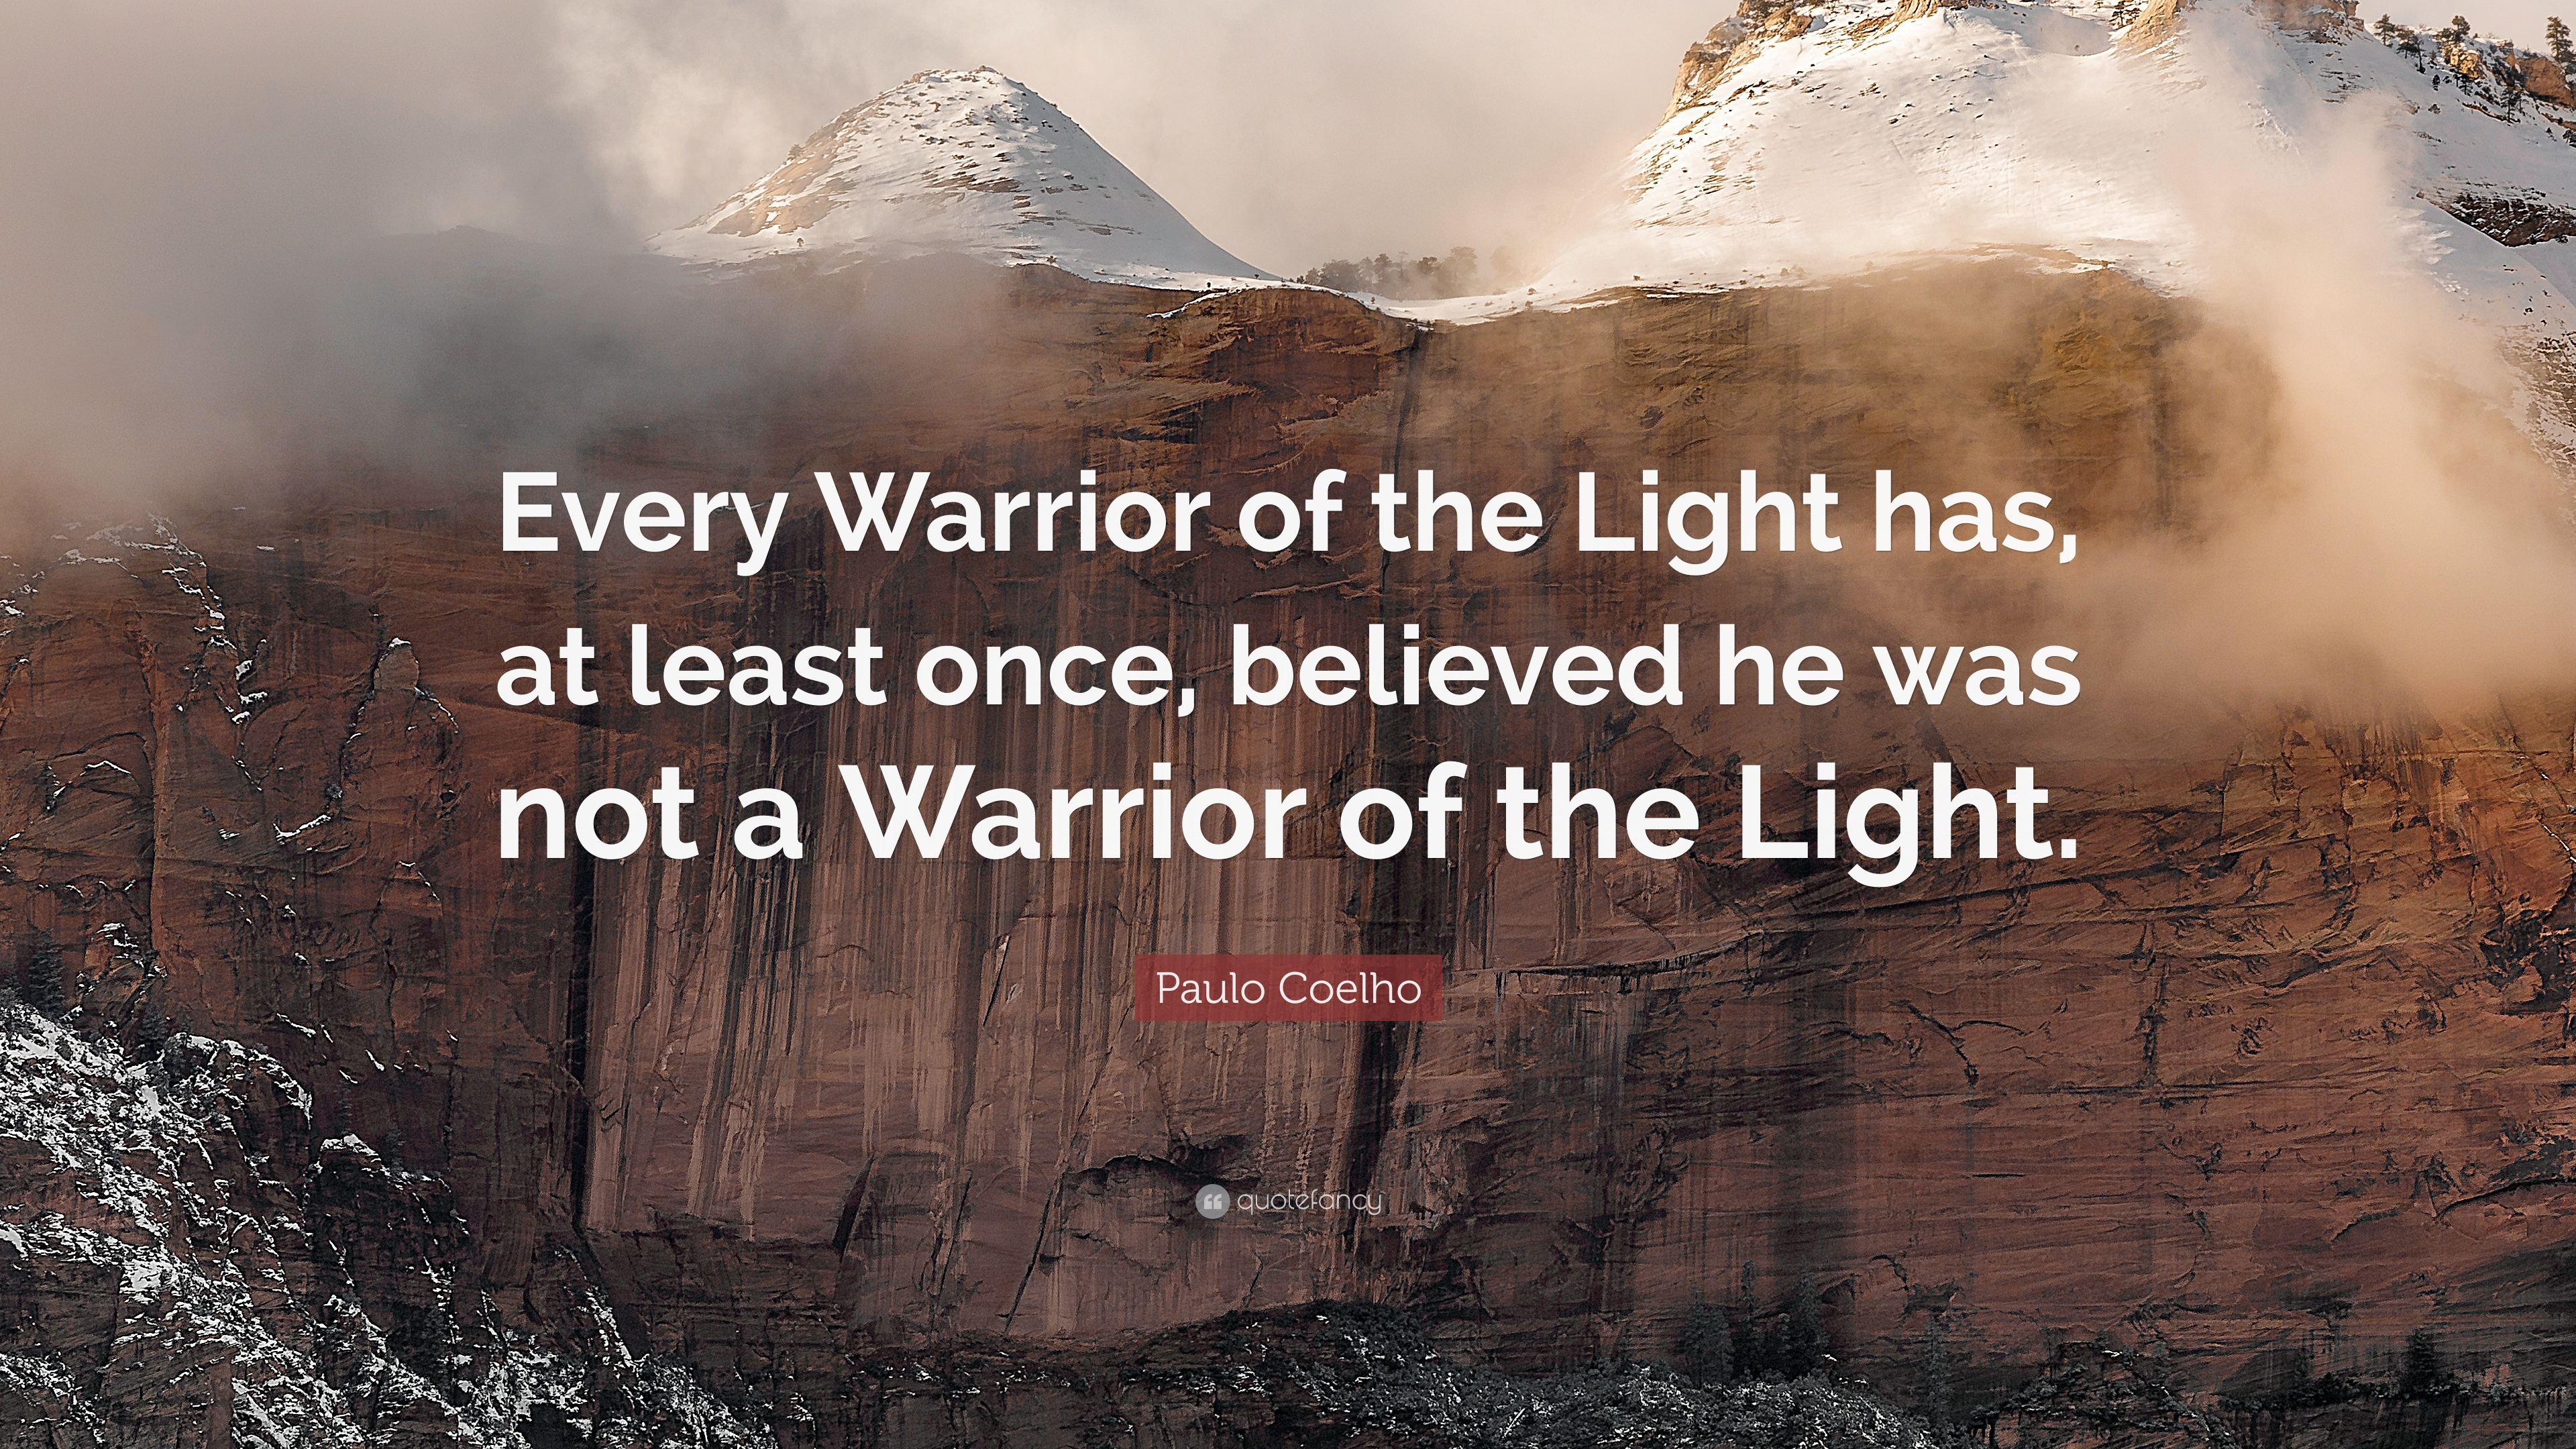 Paulo Coelho Quote: Every Warrior of the Light has, at